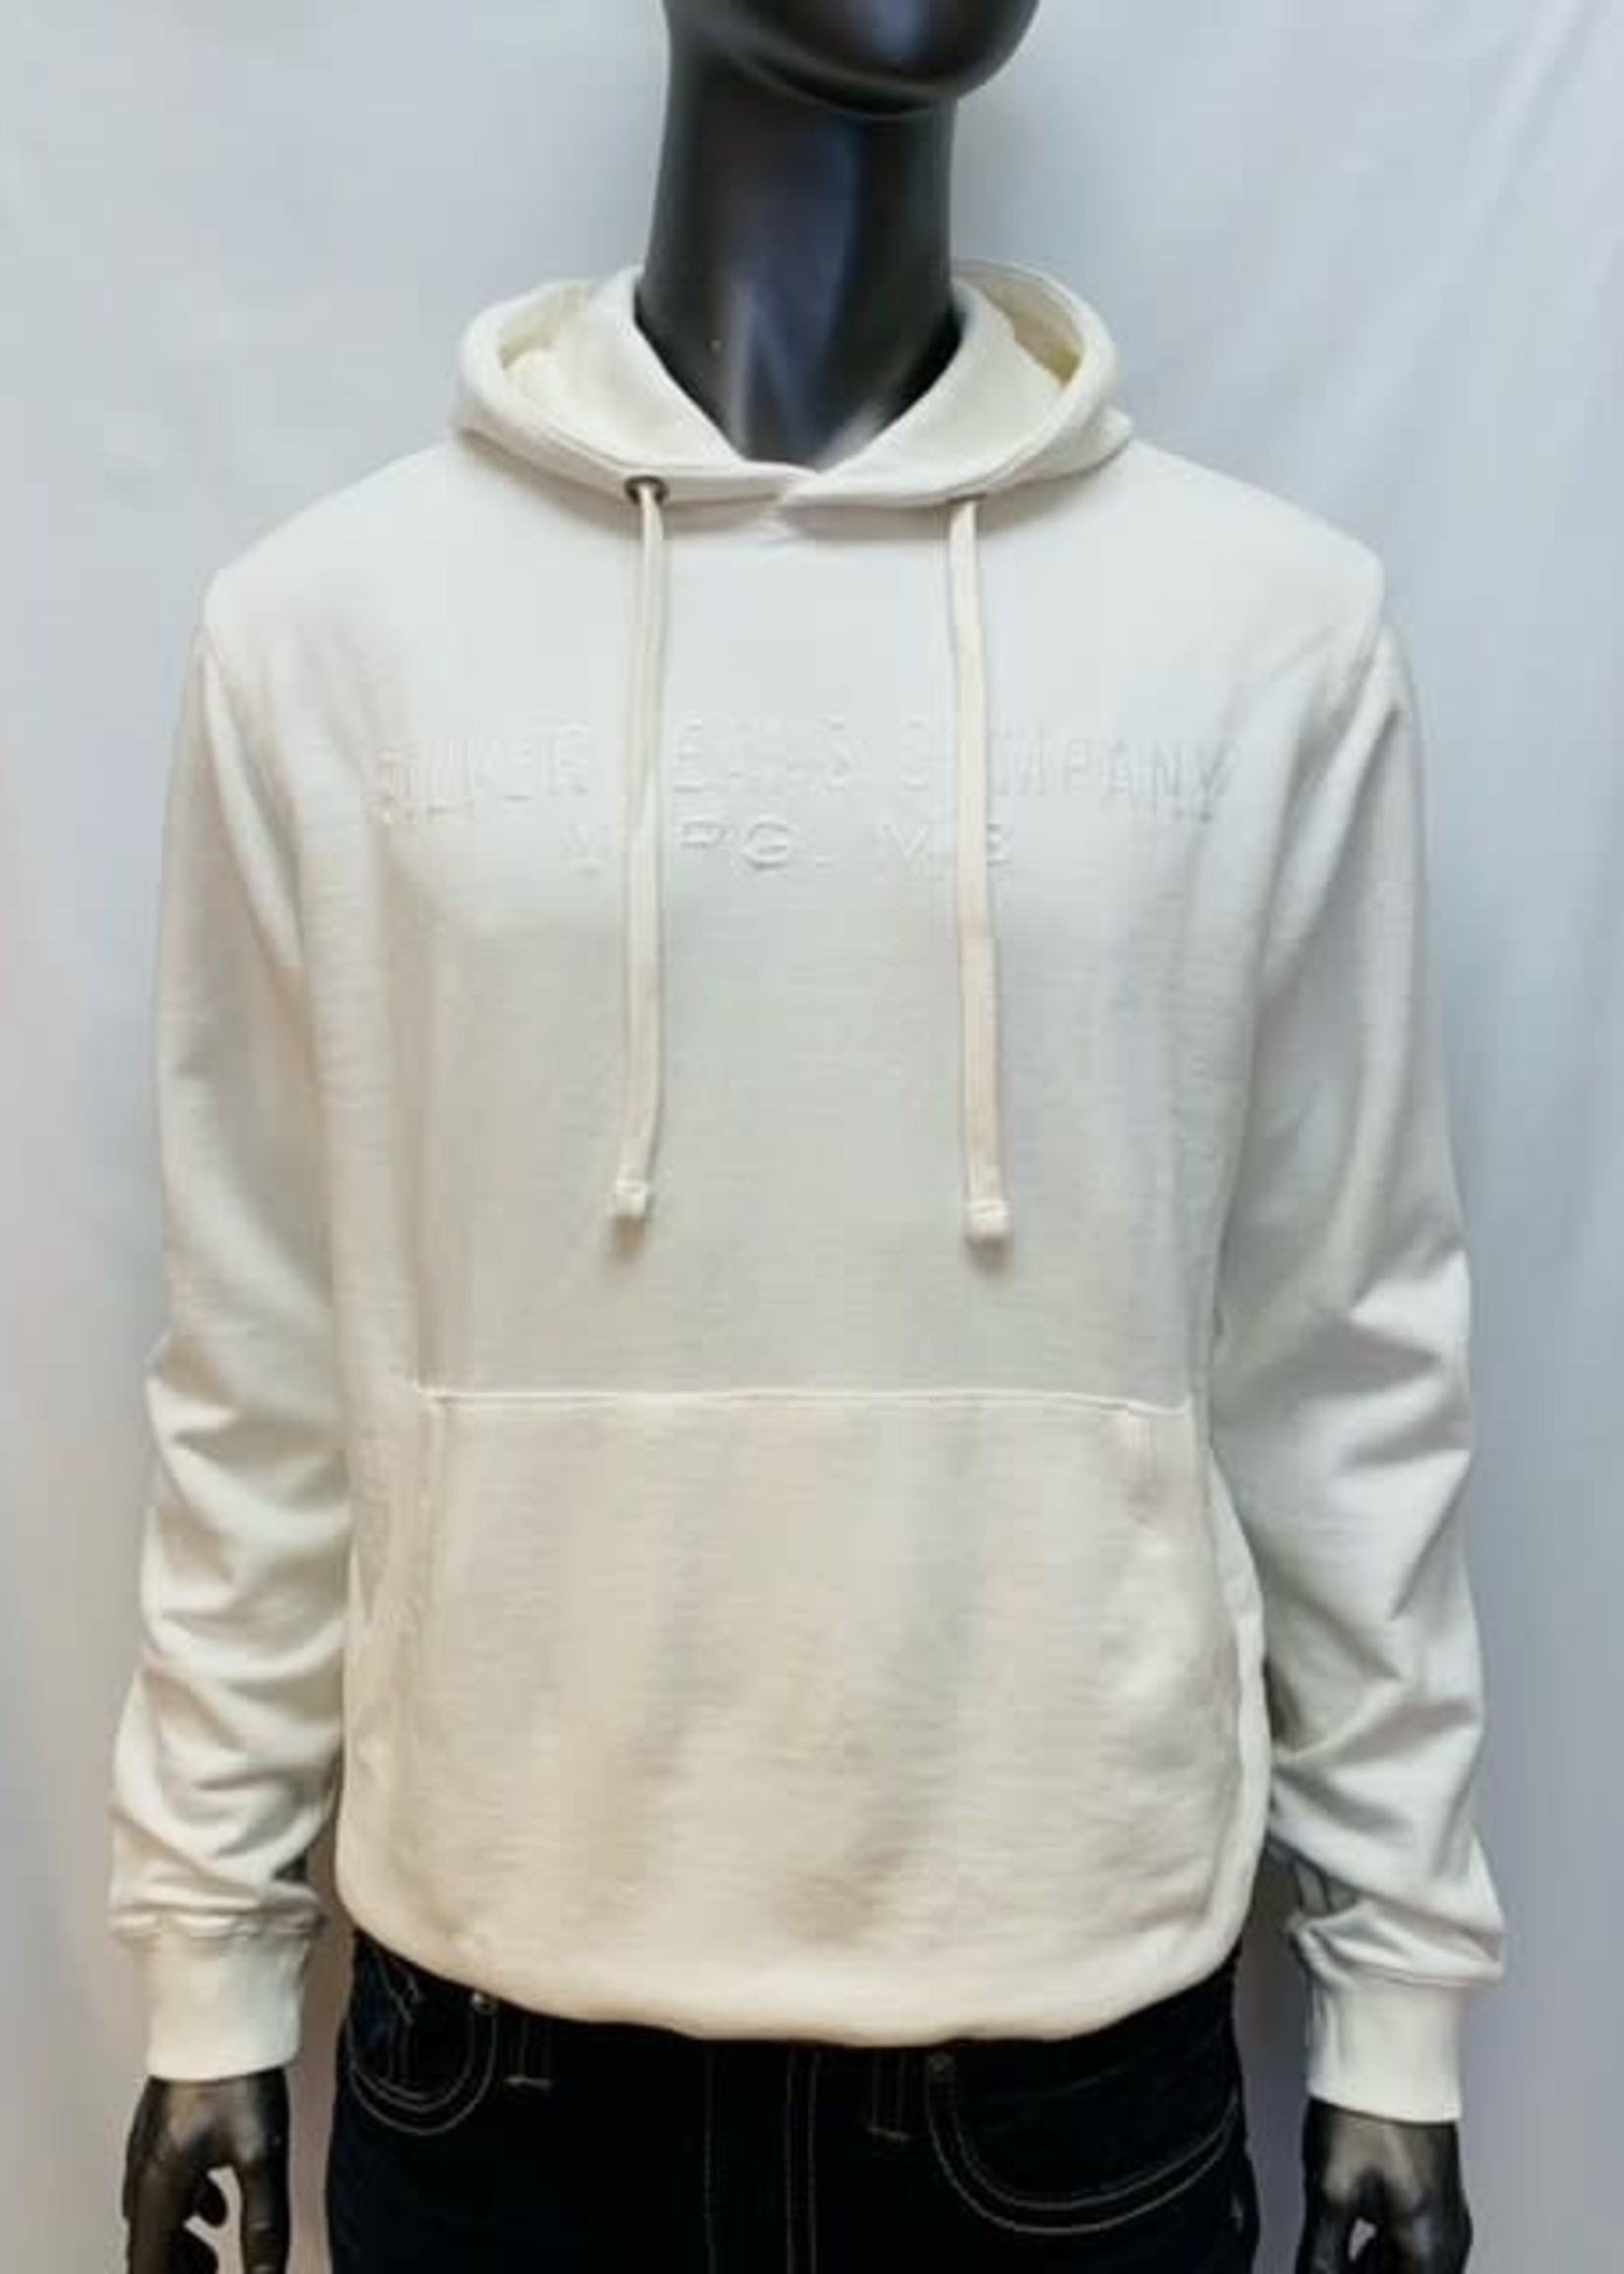 Silver Hoodie Sweaters, comes in multiple colors